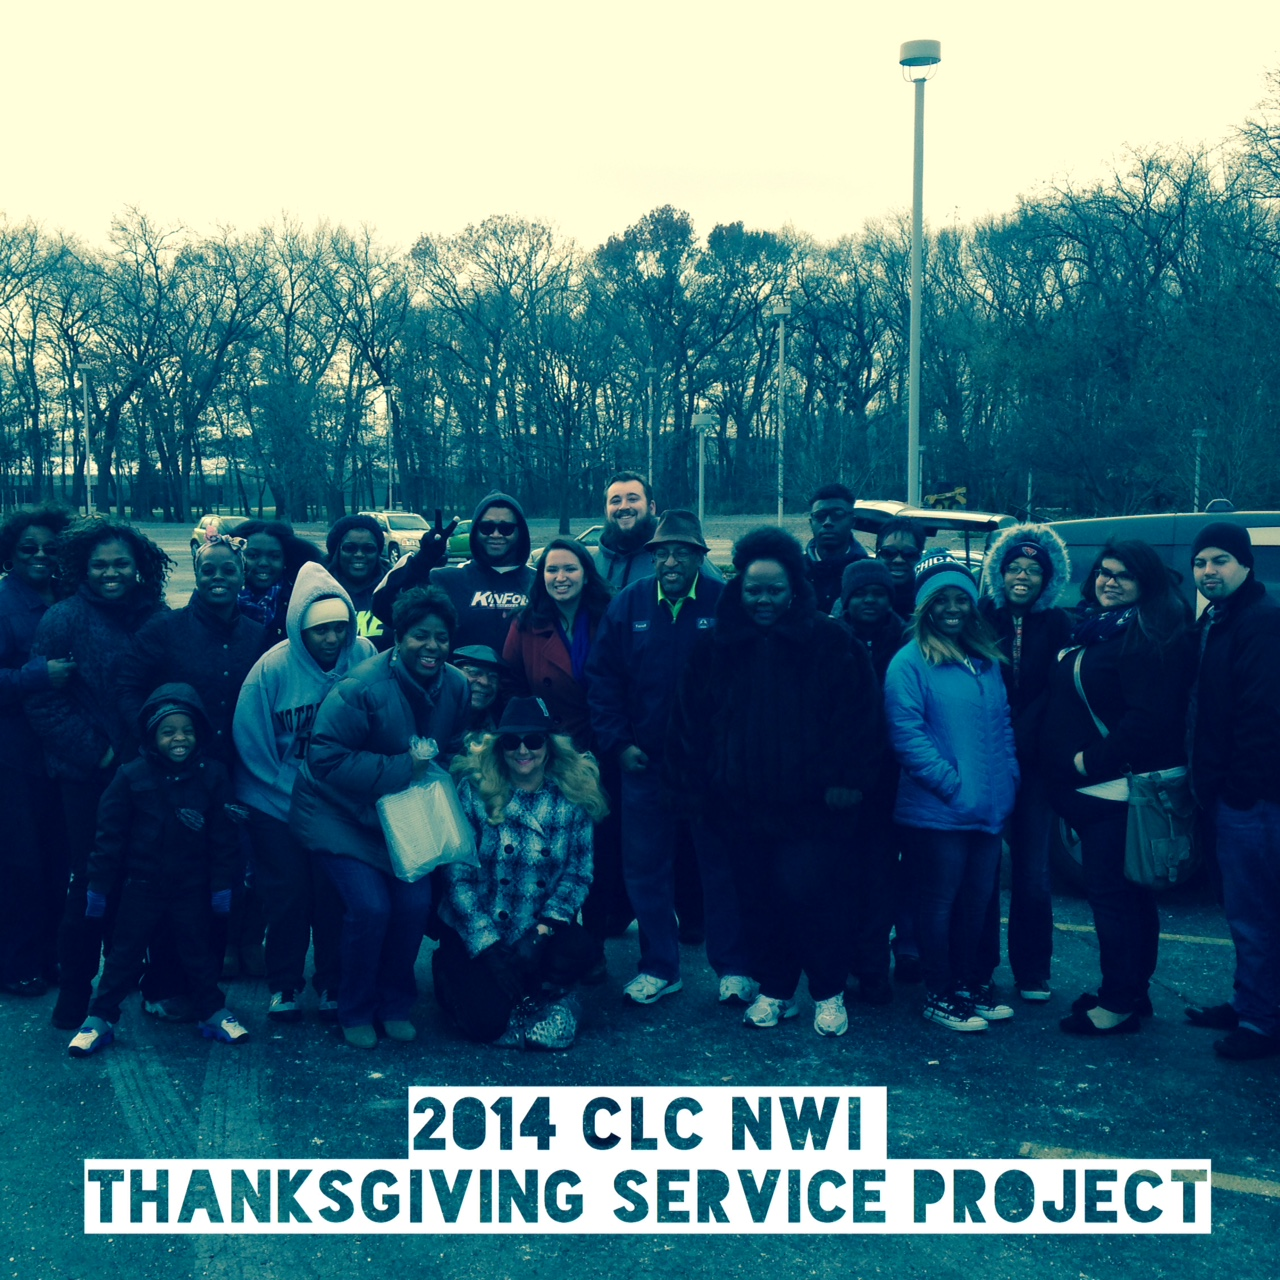 So proud of some great CLC-NWI volunteers who served meals to homeless & needy folks this Thanksgiving!